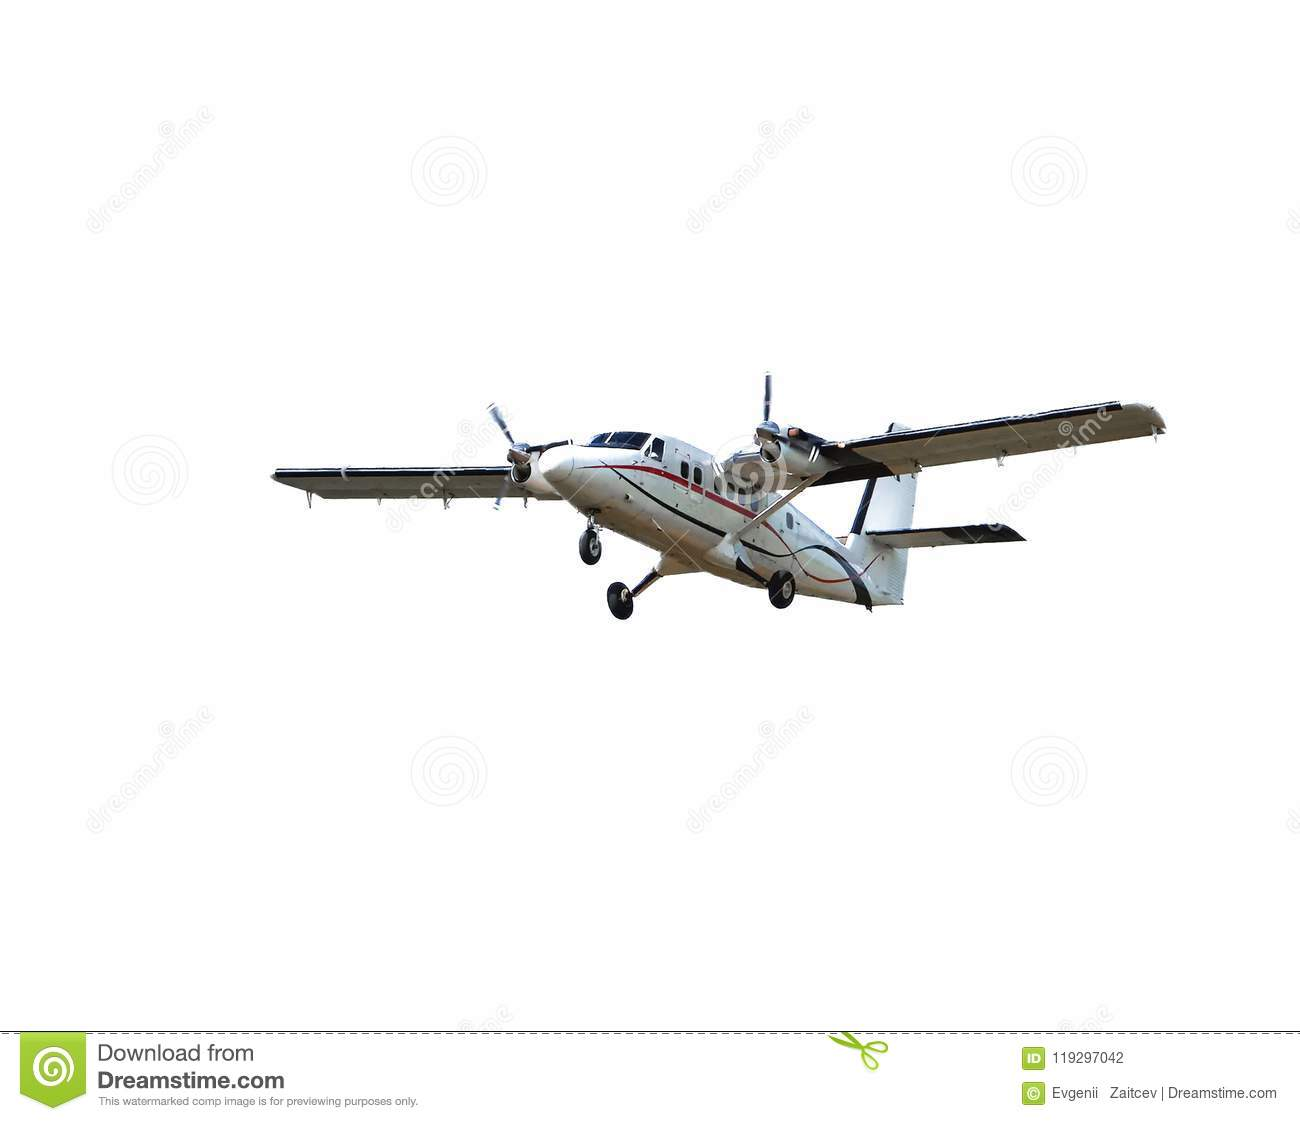 Flying small passenger propeller plane isolated on white background. Aircraft in flight